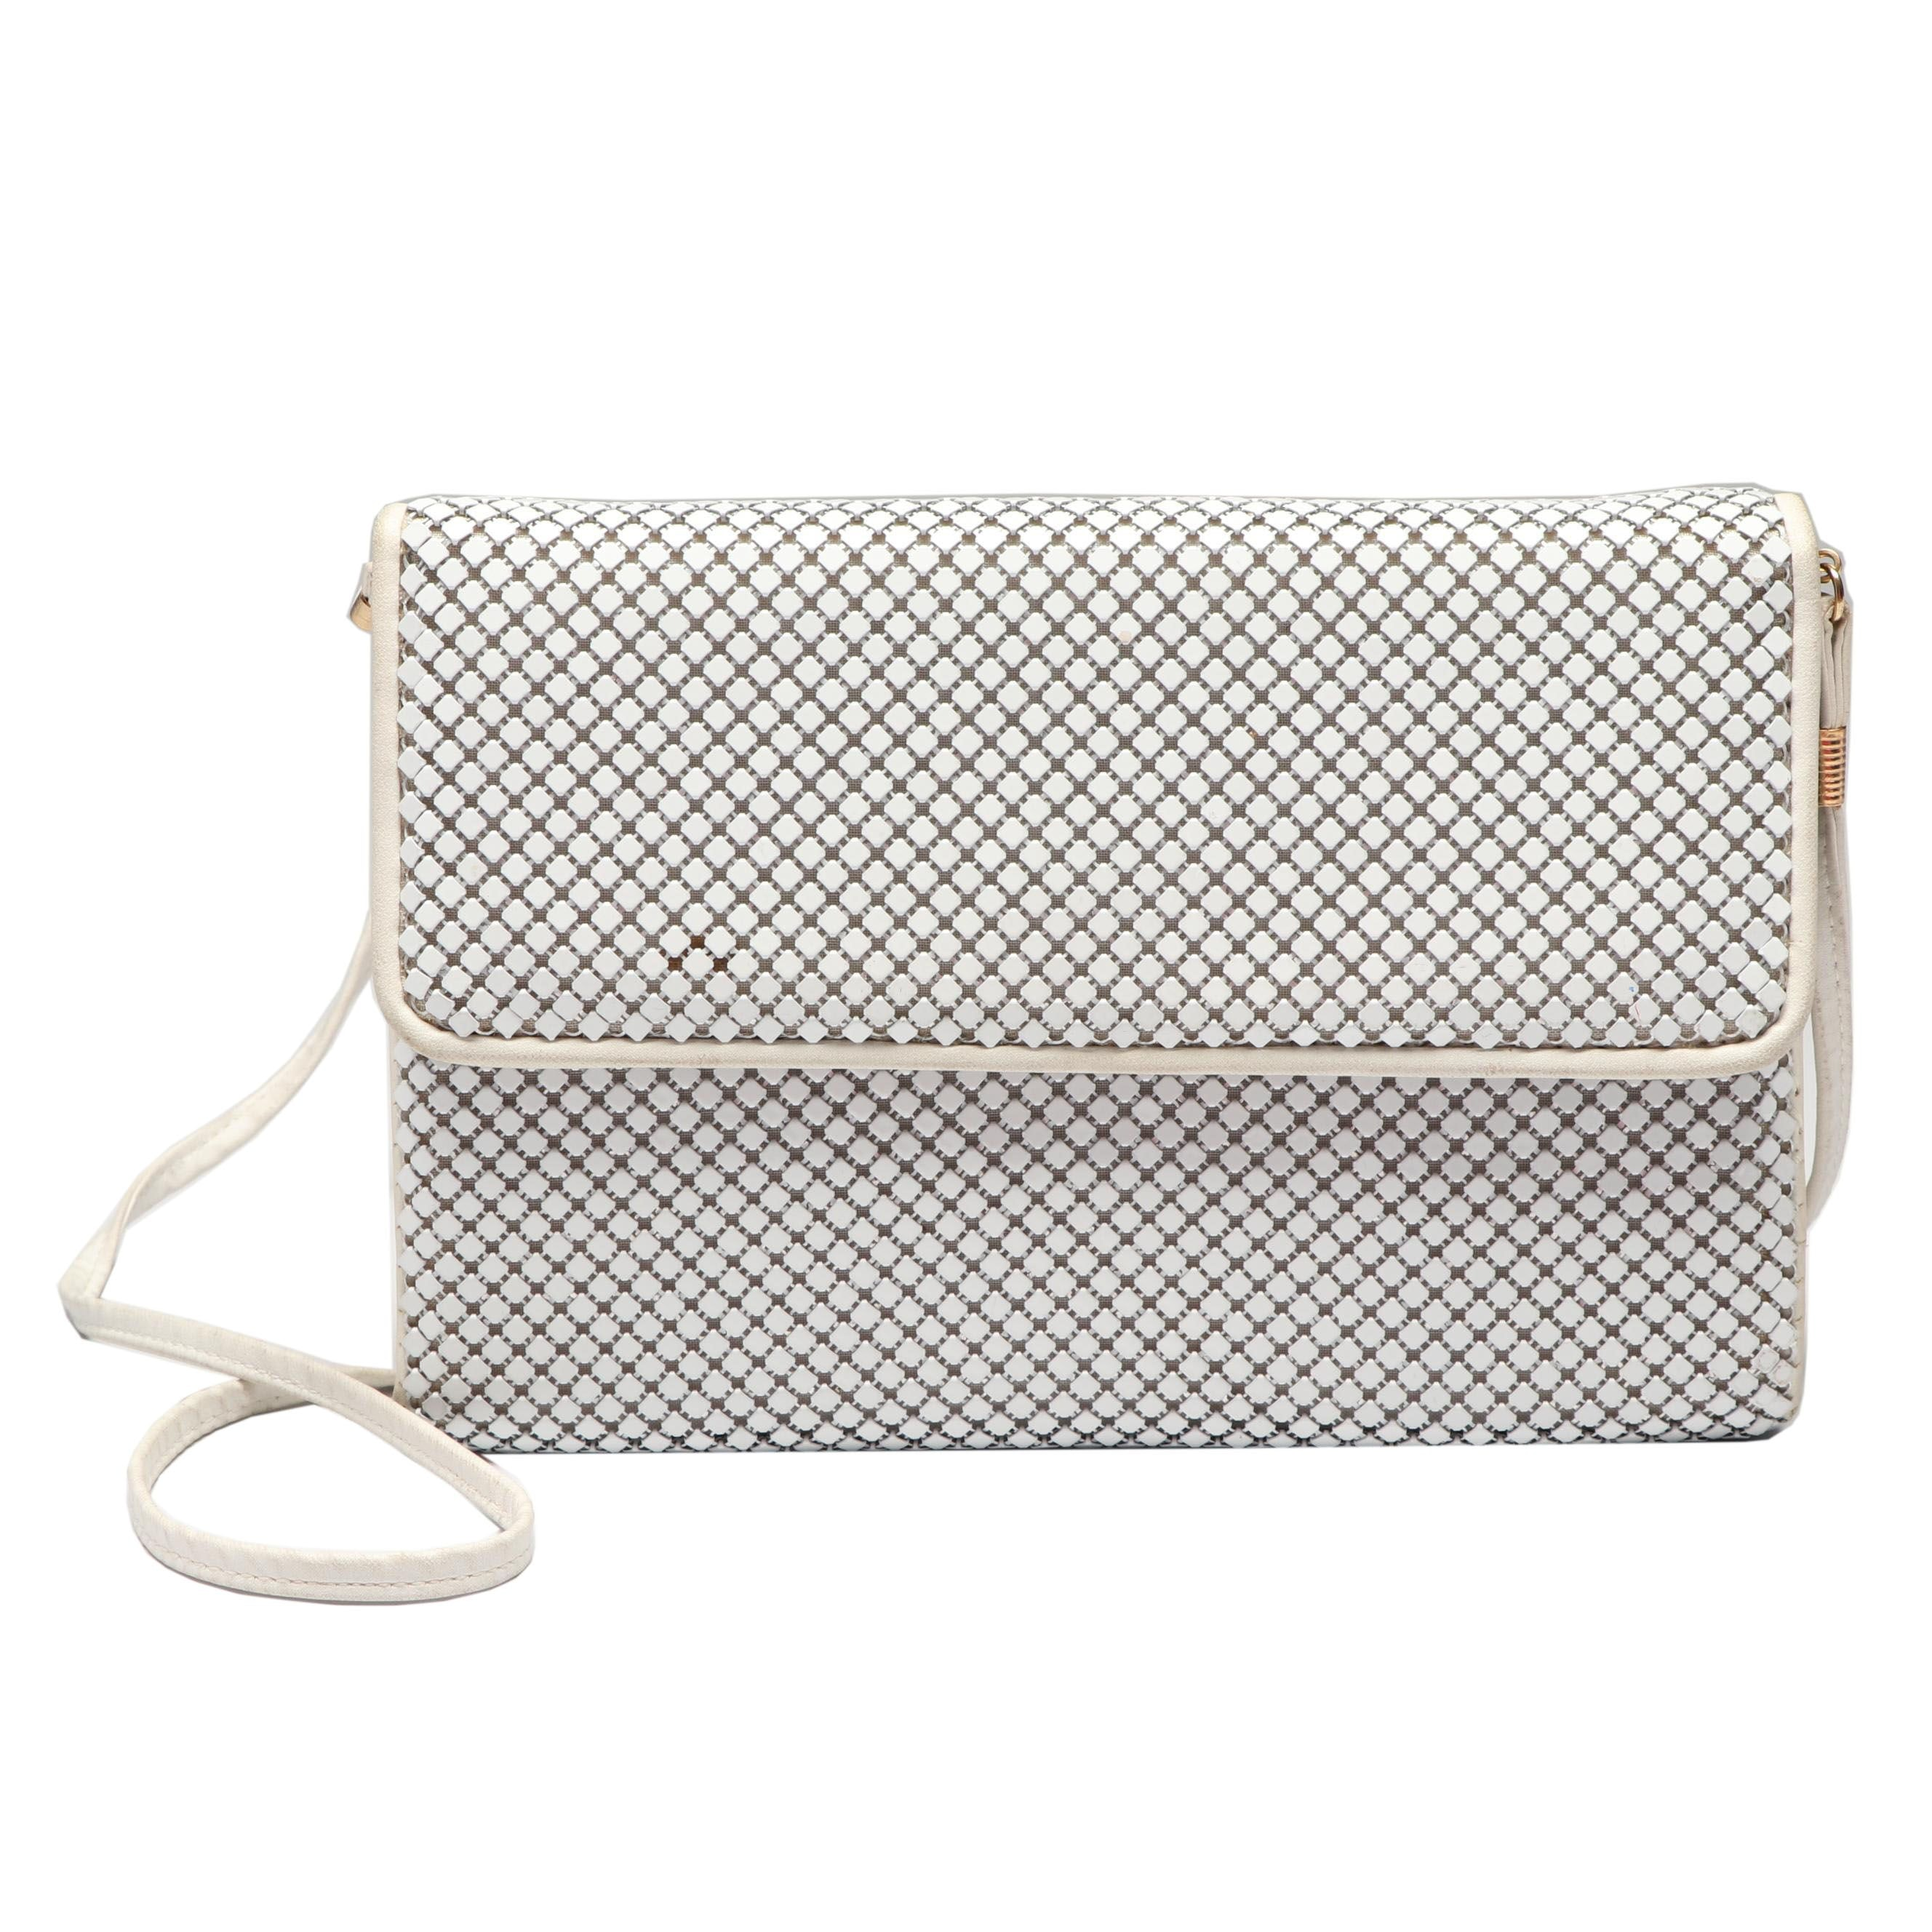 Whiting and Davis White Enameled Metal Mesh Shoulder Bag, circa 1980